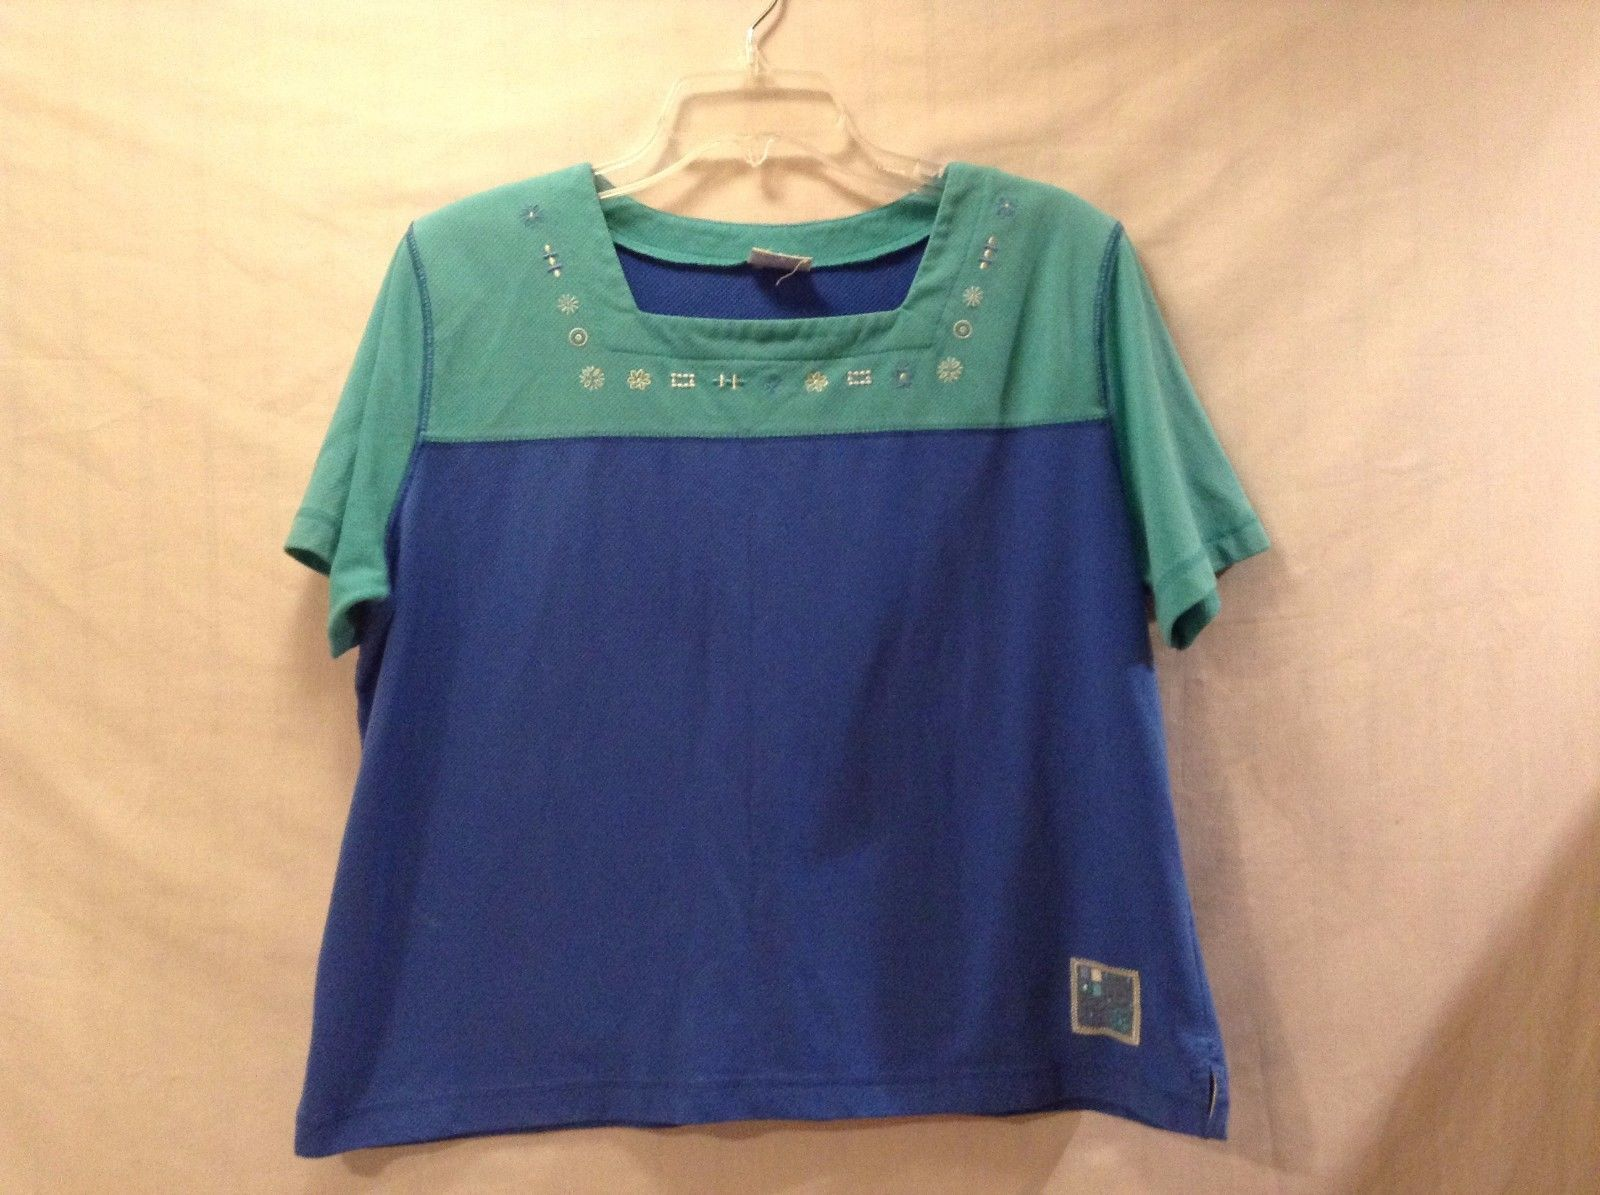 Good Condition Cyan Soft Blue Short Sleeved Tee Shirt Koret Francisca